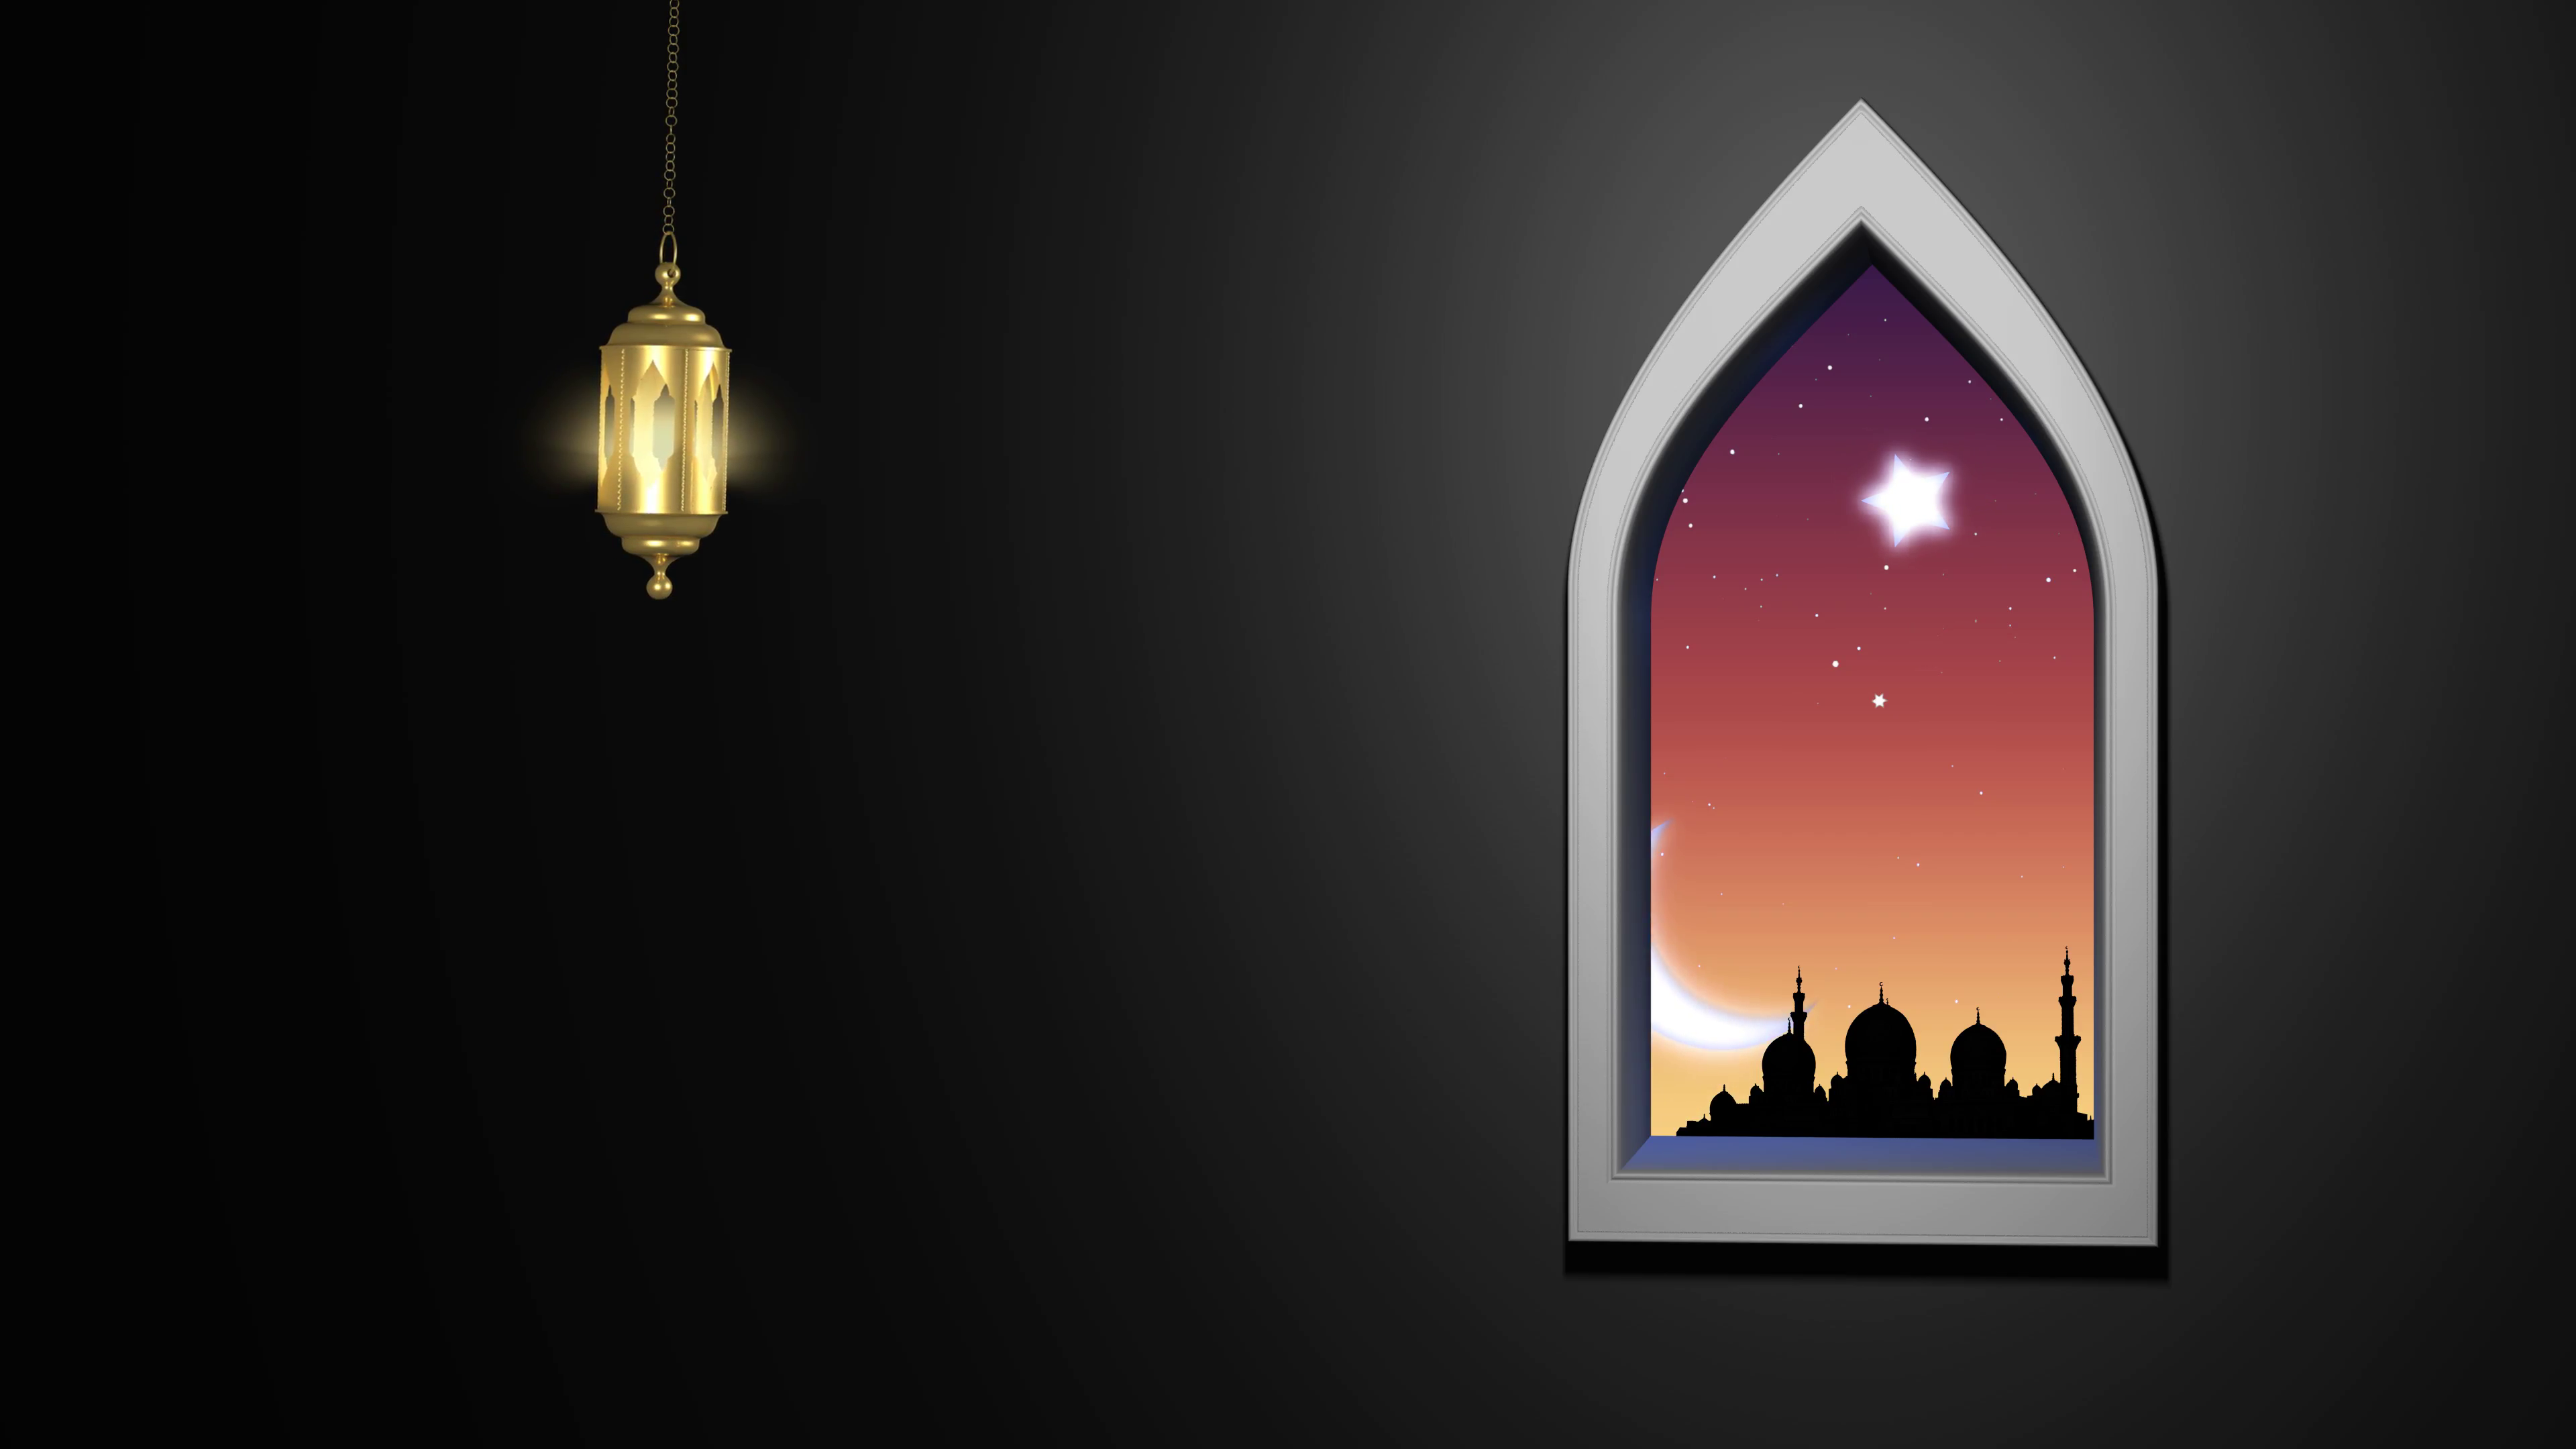 Download 660+ Background Islami Hd Png Gratis